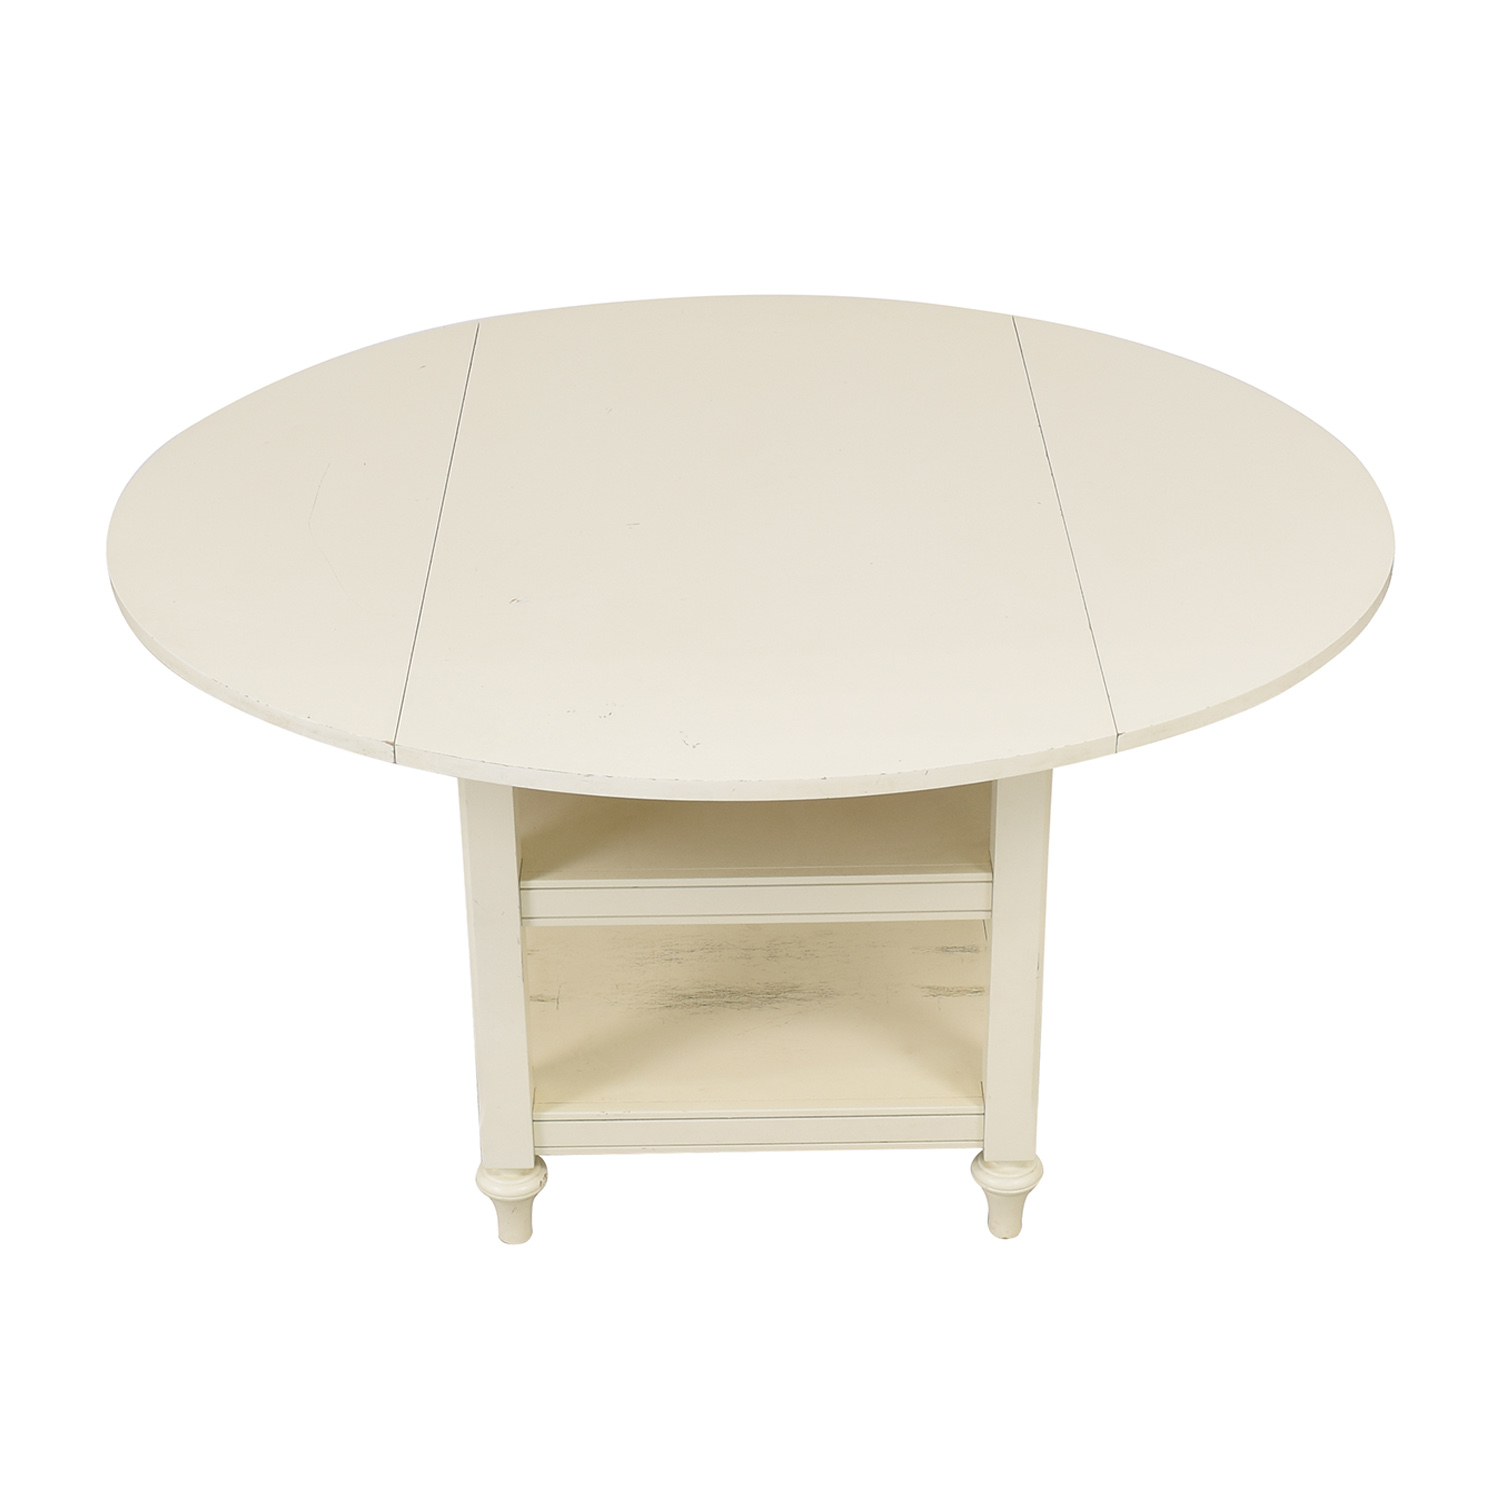 Pottery Barn Shayne Drop-Leaf Table / Tables